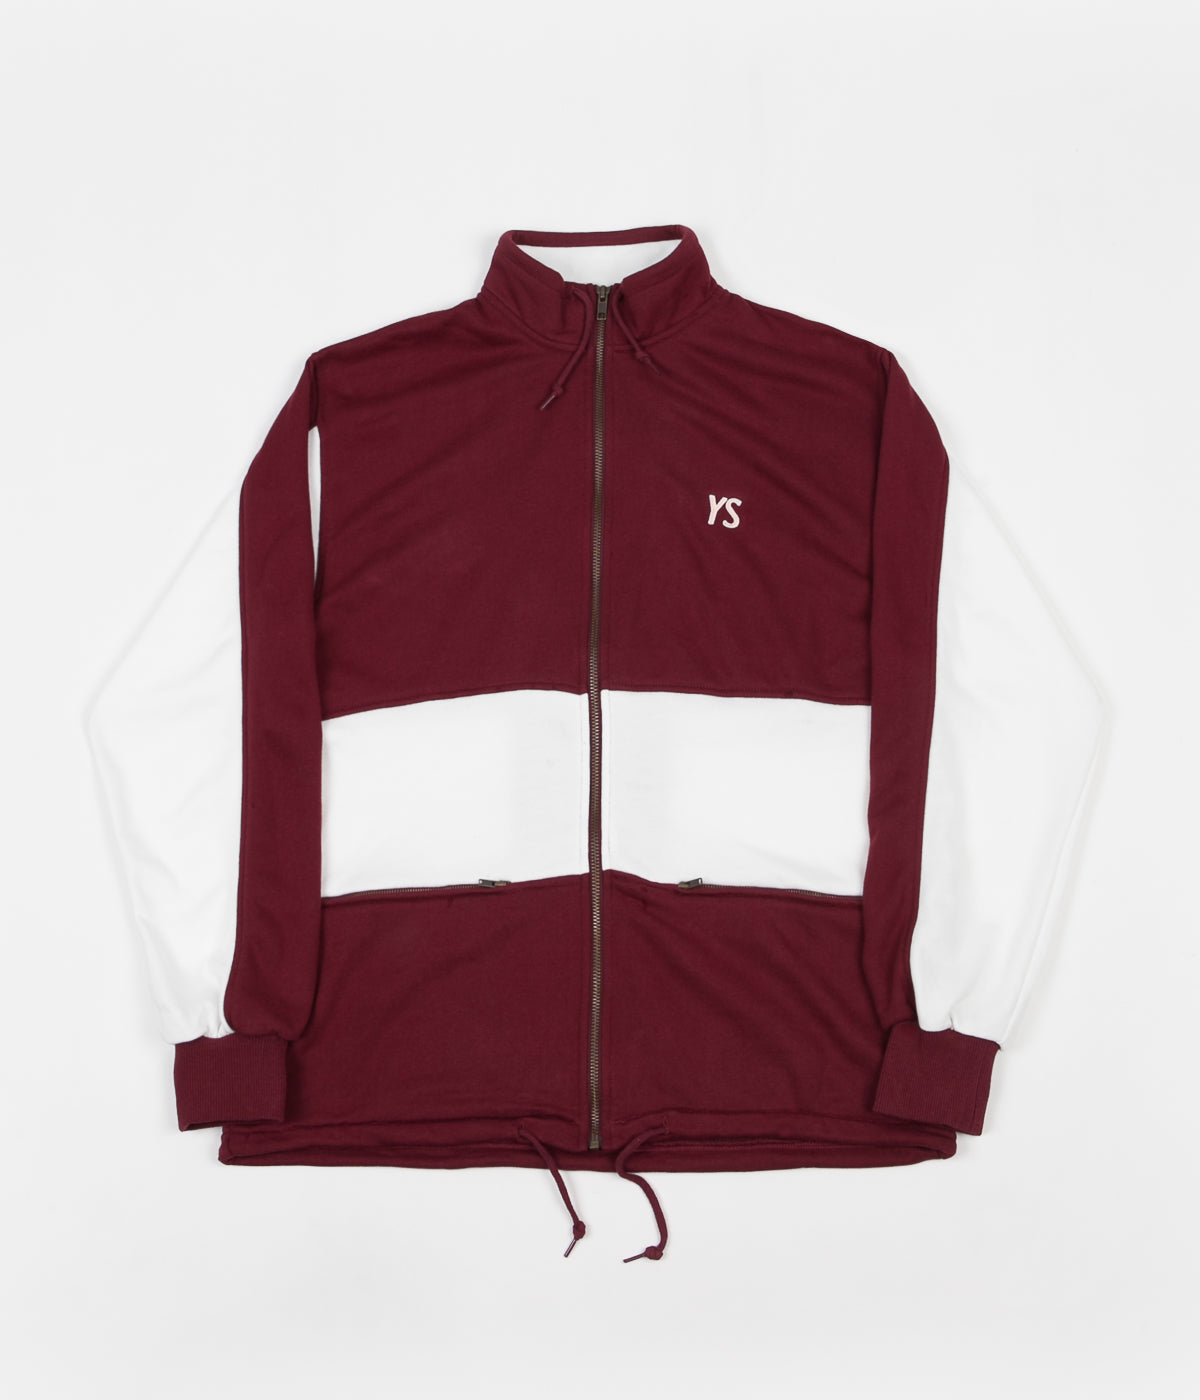 Yardsale Draw String Full Zip Sweatshirt - Cardinal / White